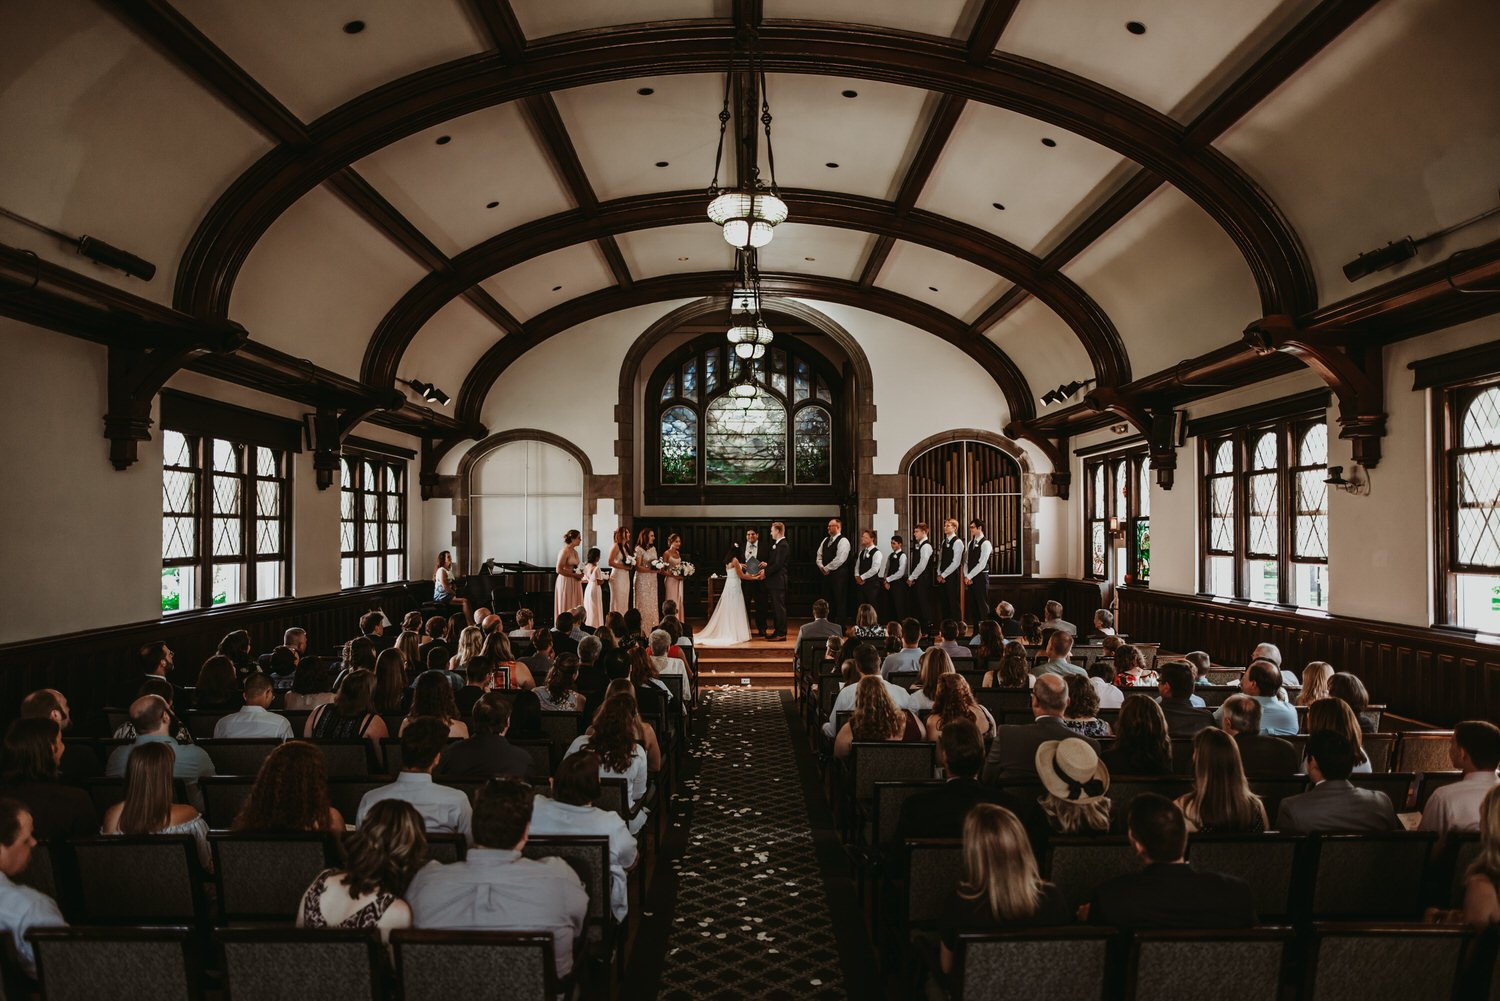 The Adamkovi Chicago Wedding Photography, Creative photography, Dark and moody, Documentary, Lily reid holt memorial chapel wedding